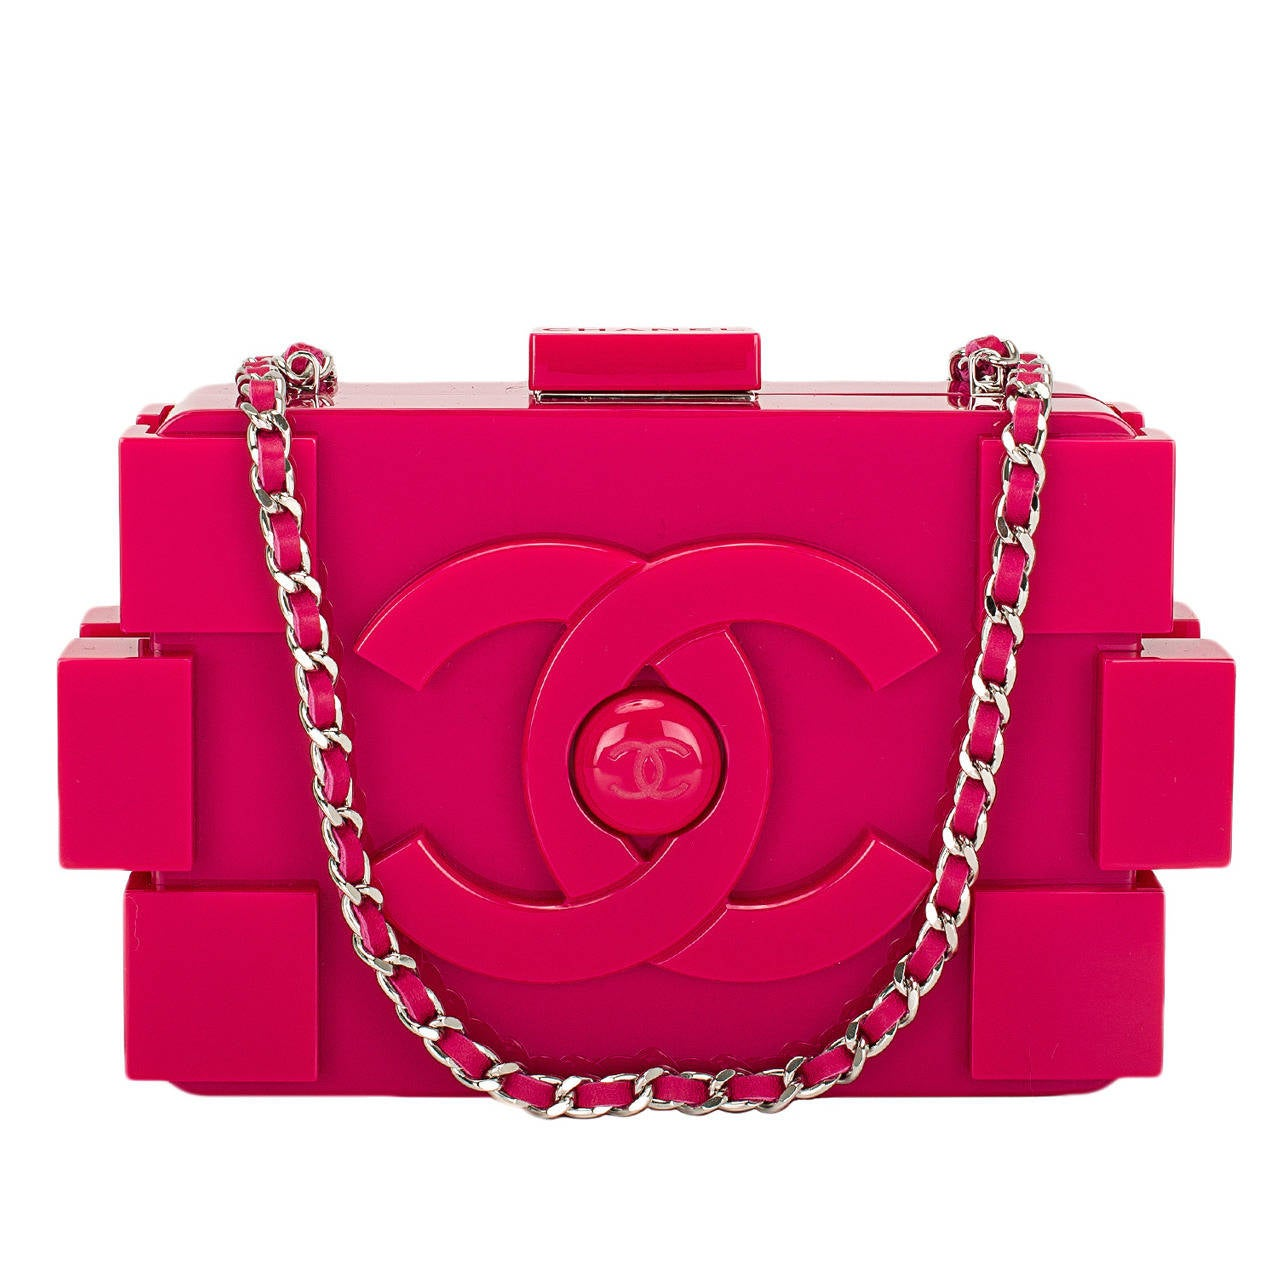 Chanel Fuchsia Pink Lego Clutch Boy Bag NEW